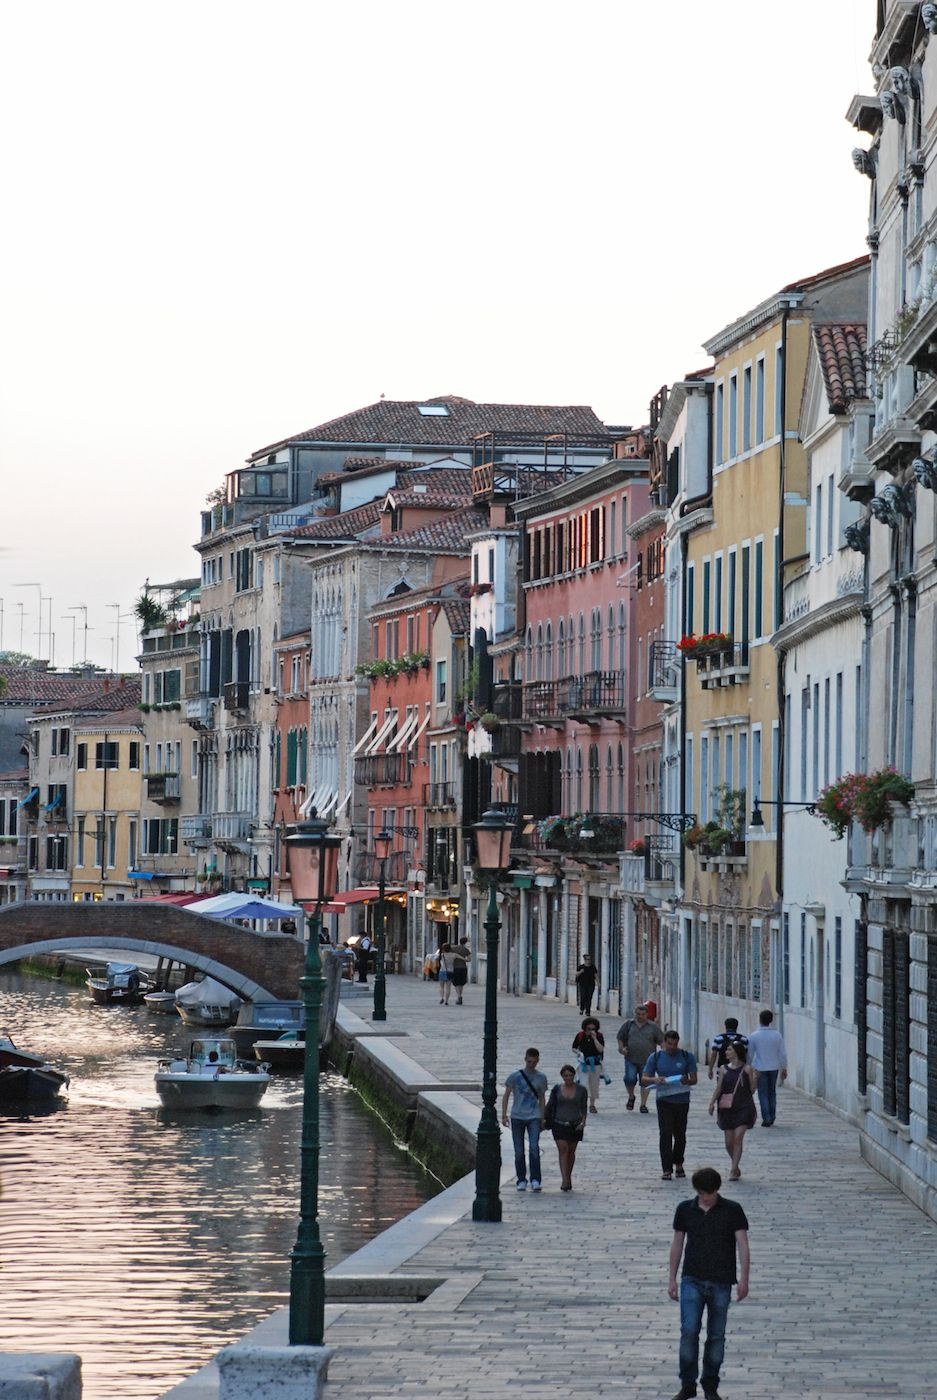 enjoy strolling along Fondamenta della Misericordia at sunset